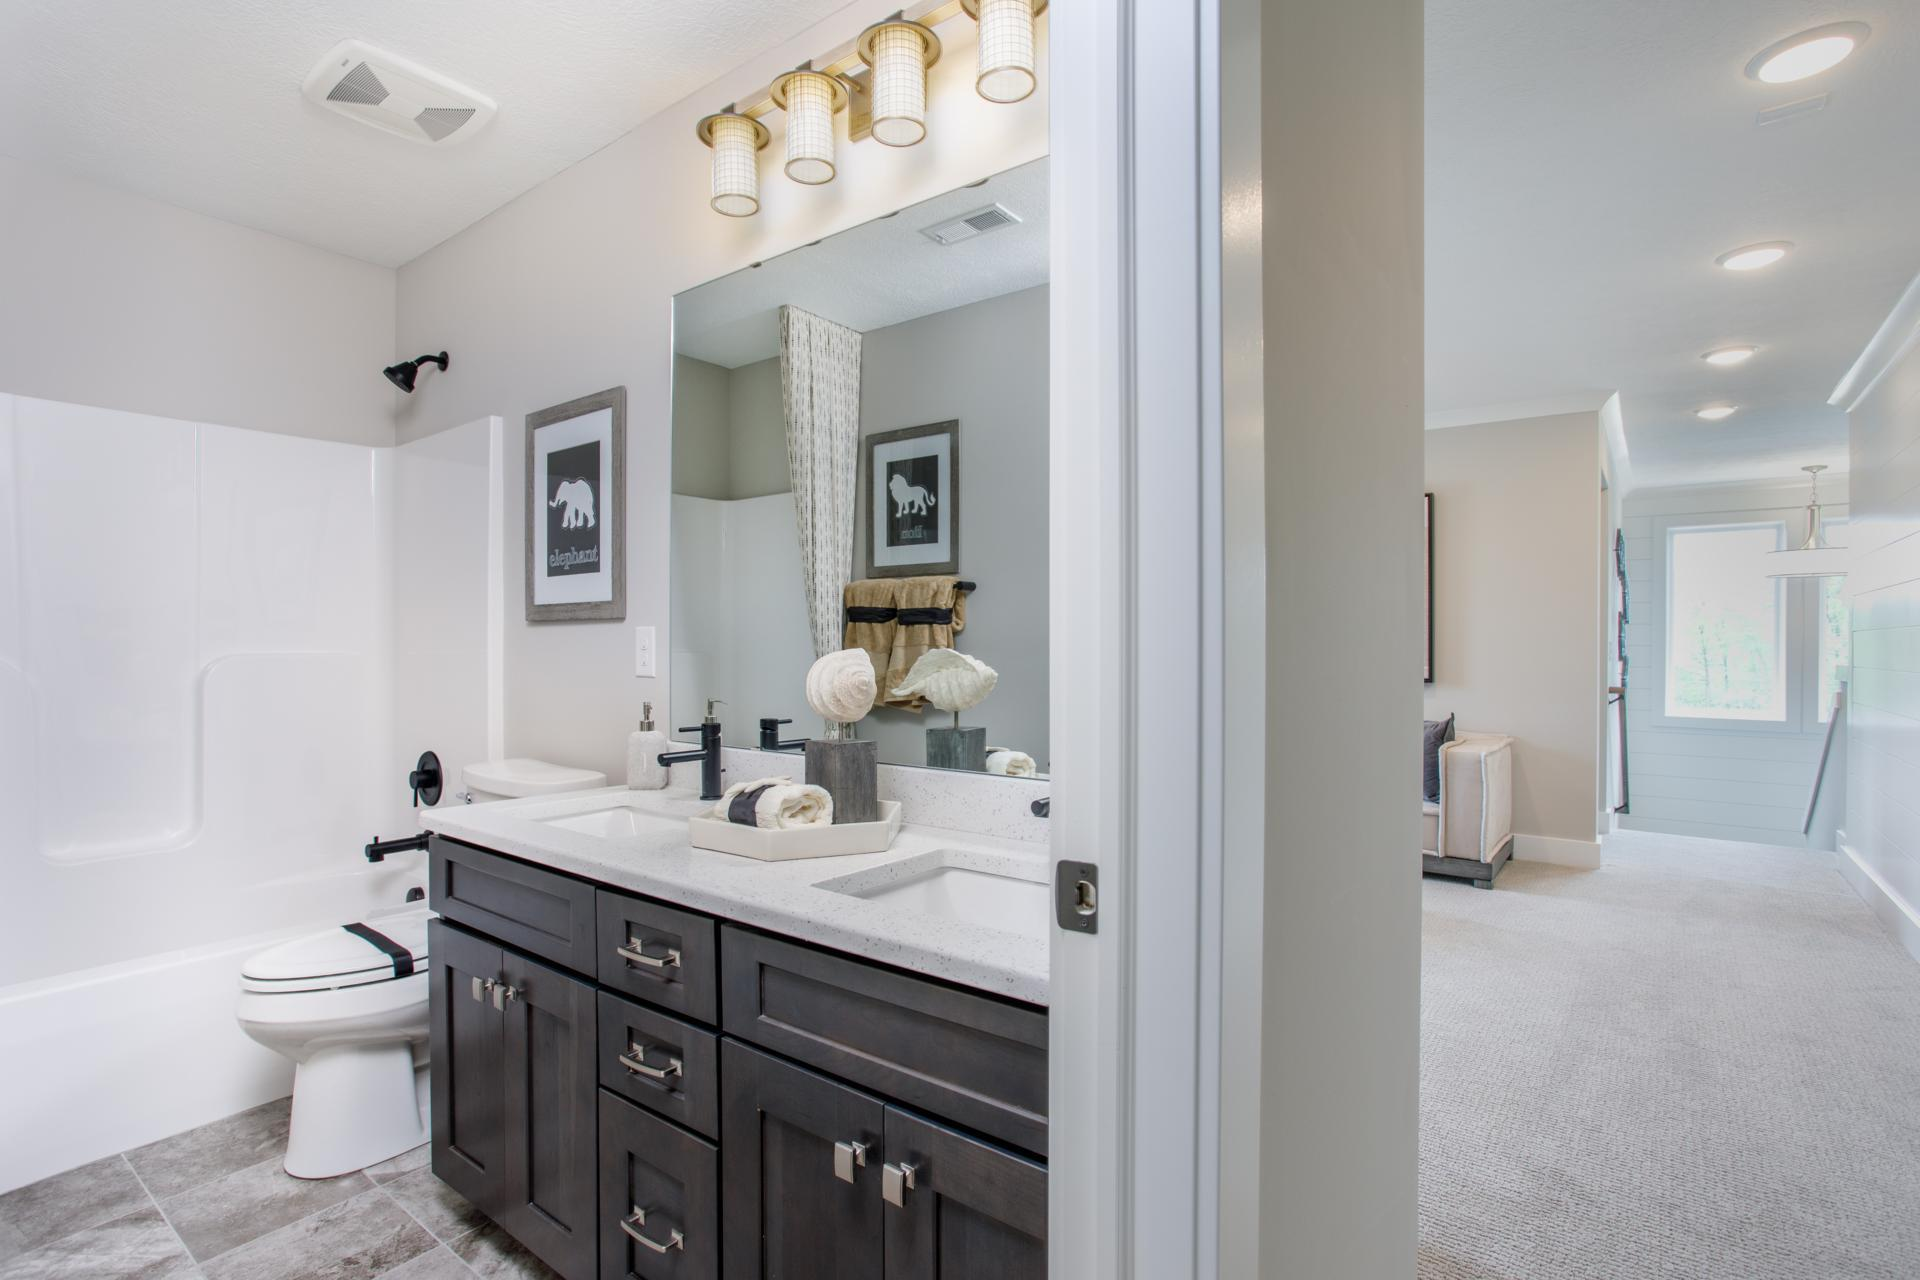 Bathroom featured in the Hollister By Drees Homes in Cleveland, OH